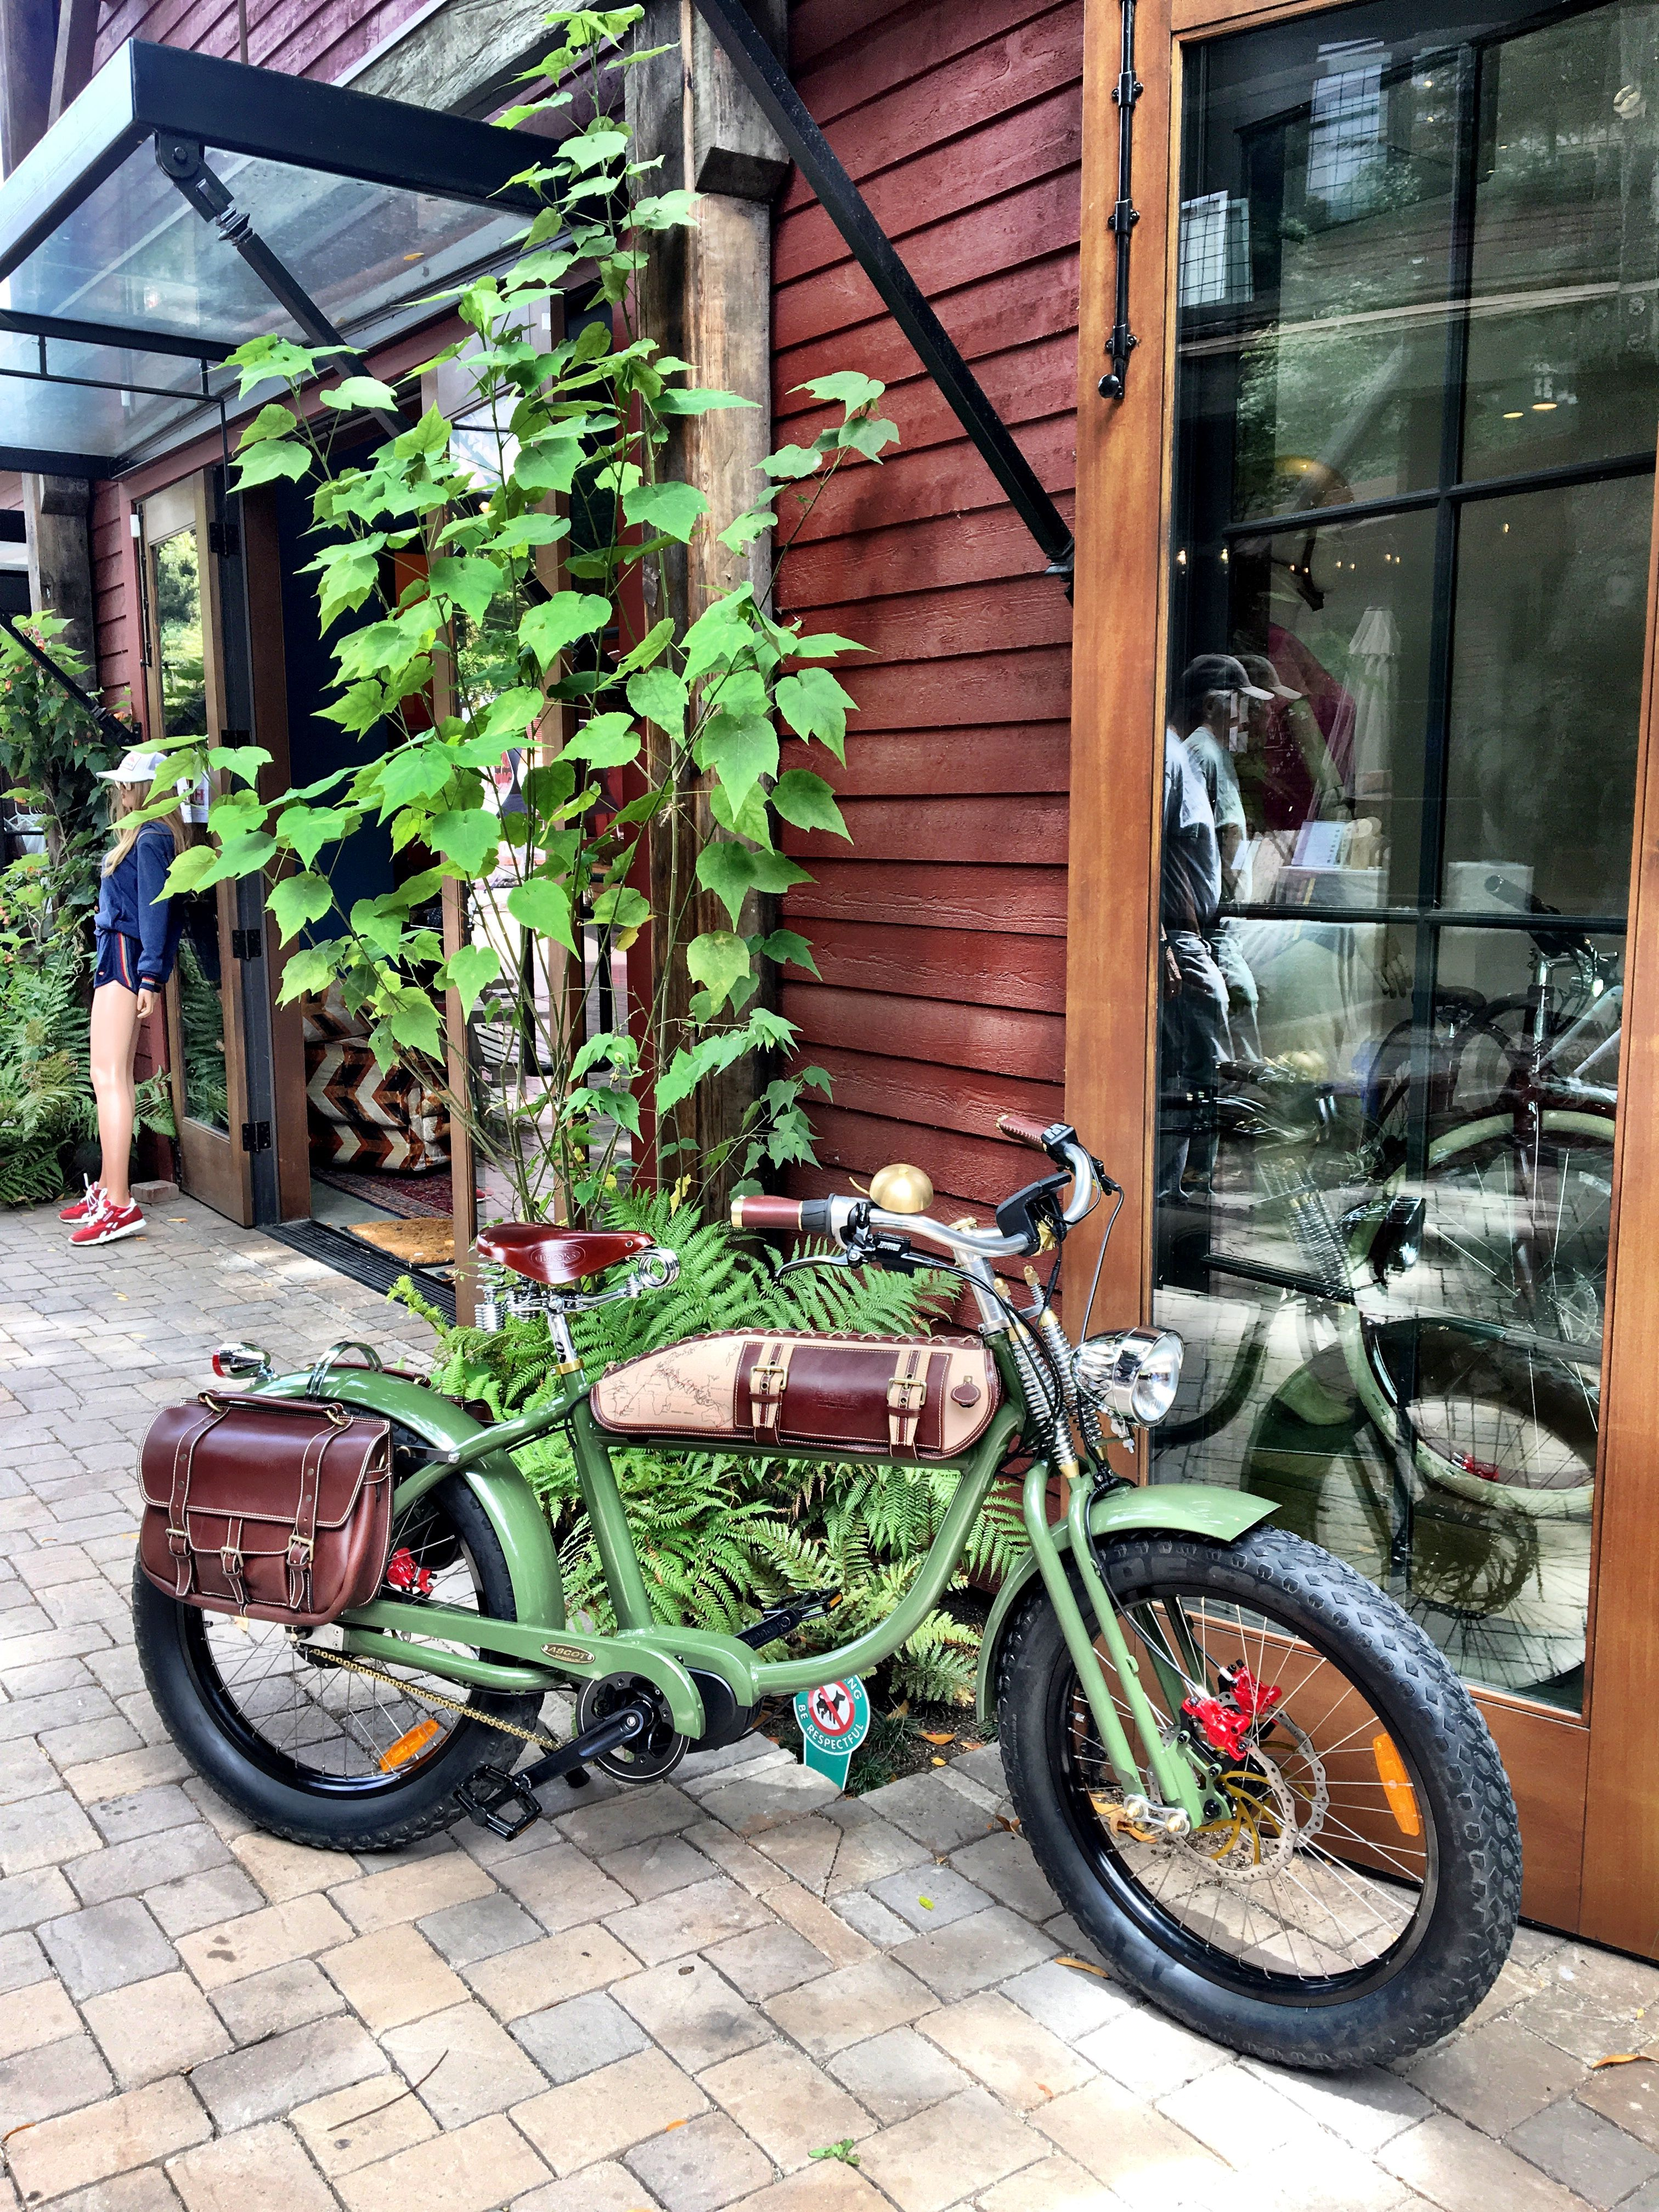 One of our beautiful vintage style electric bikes at our